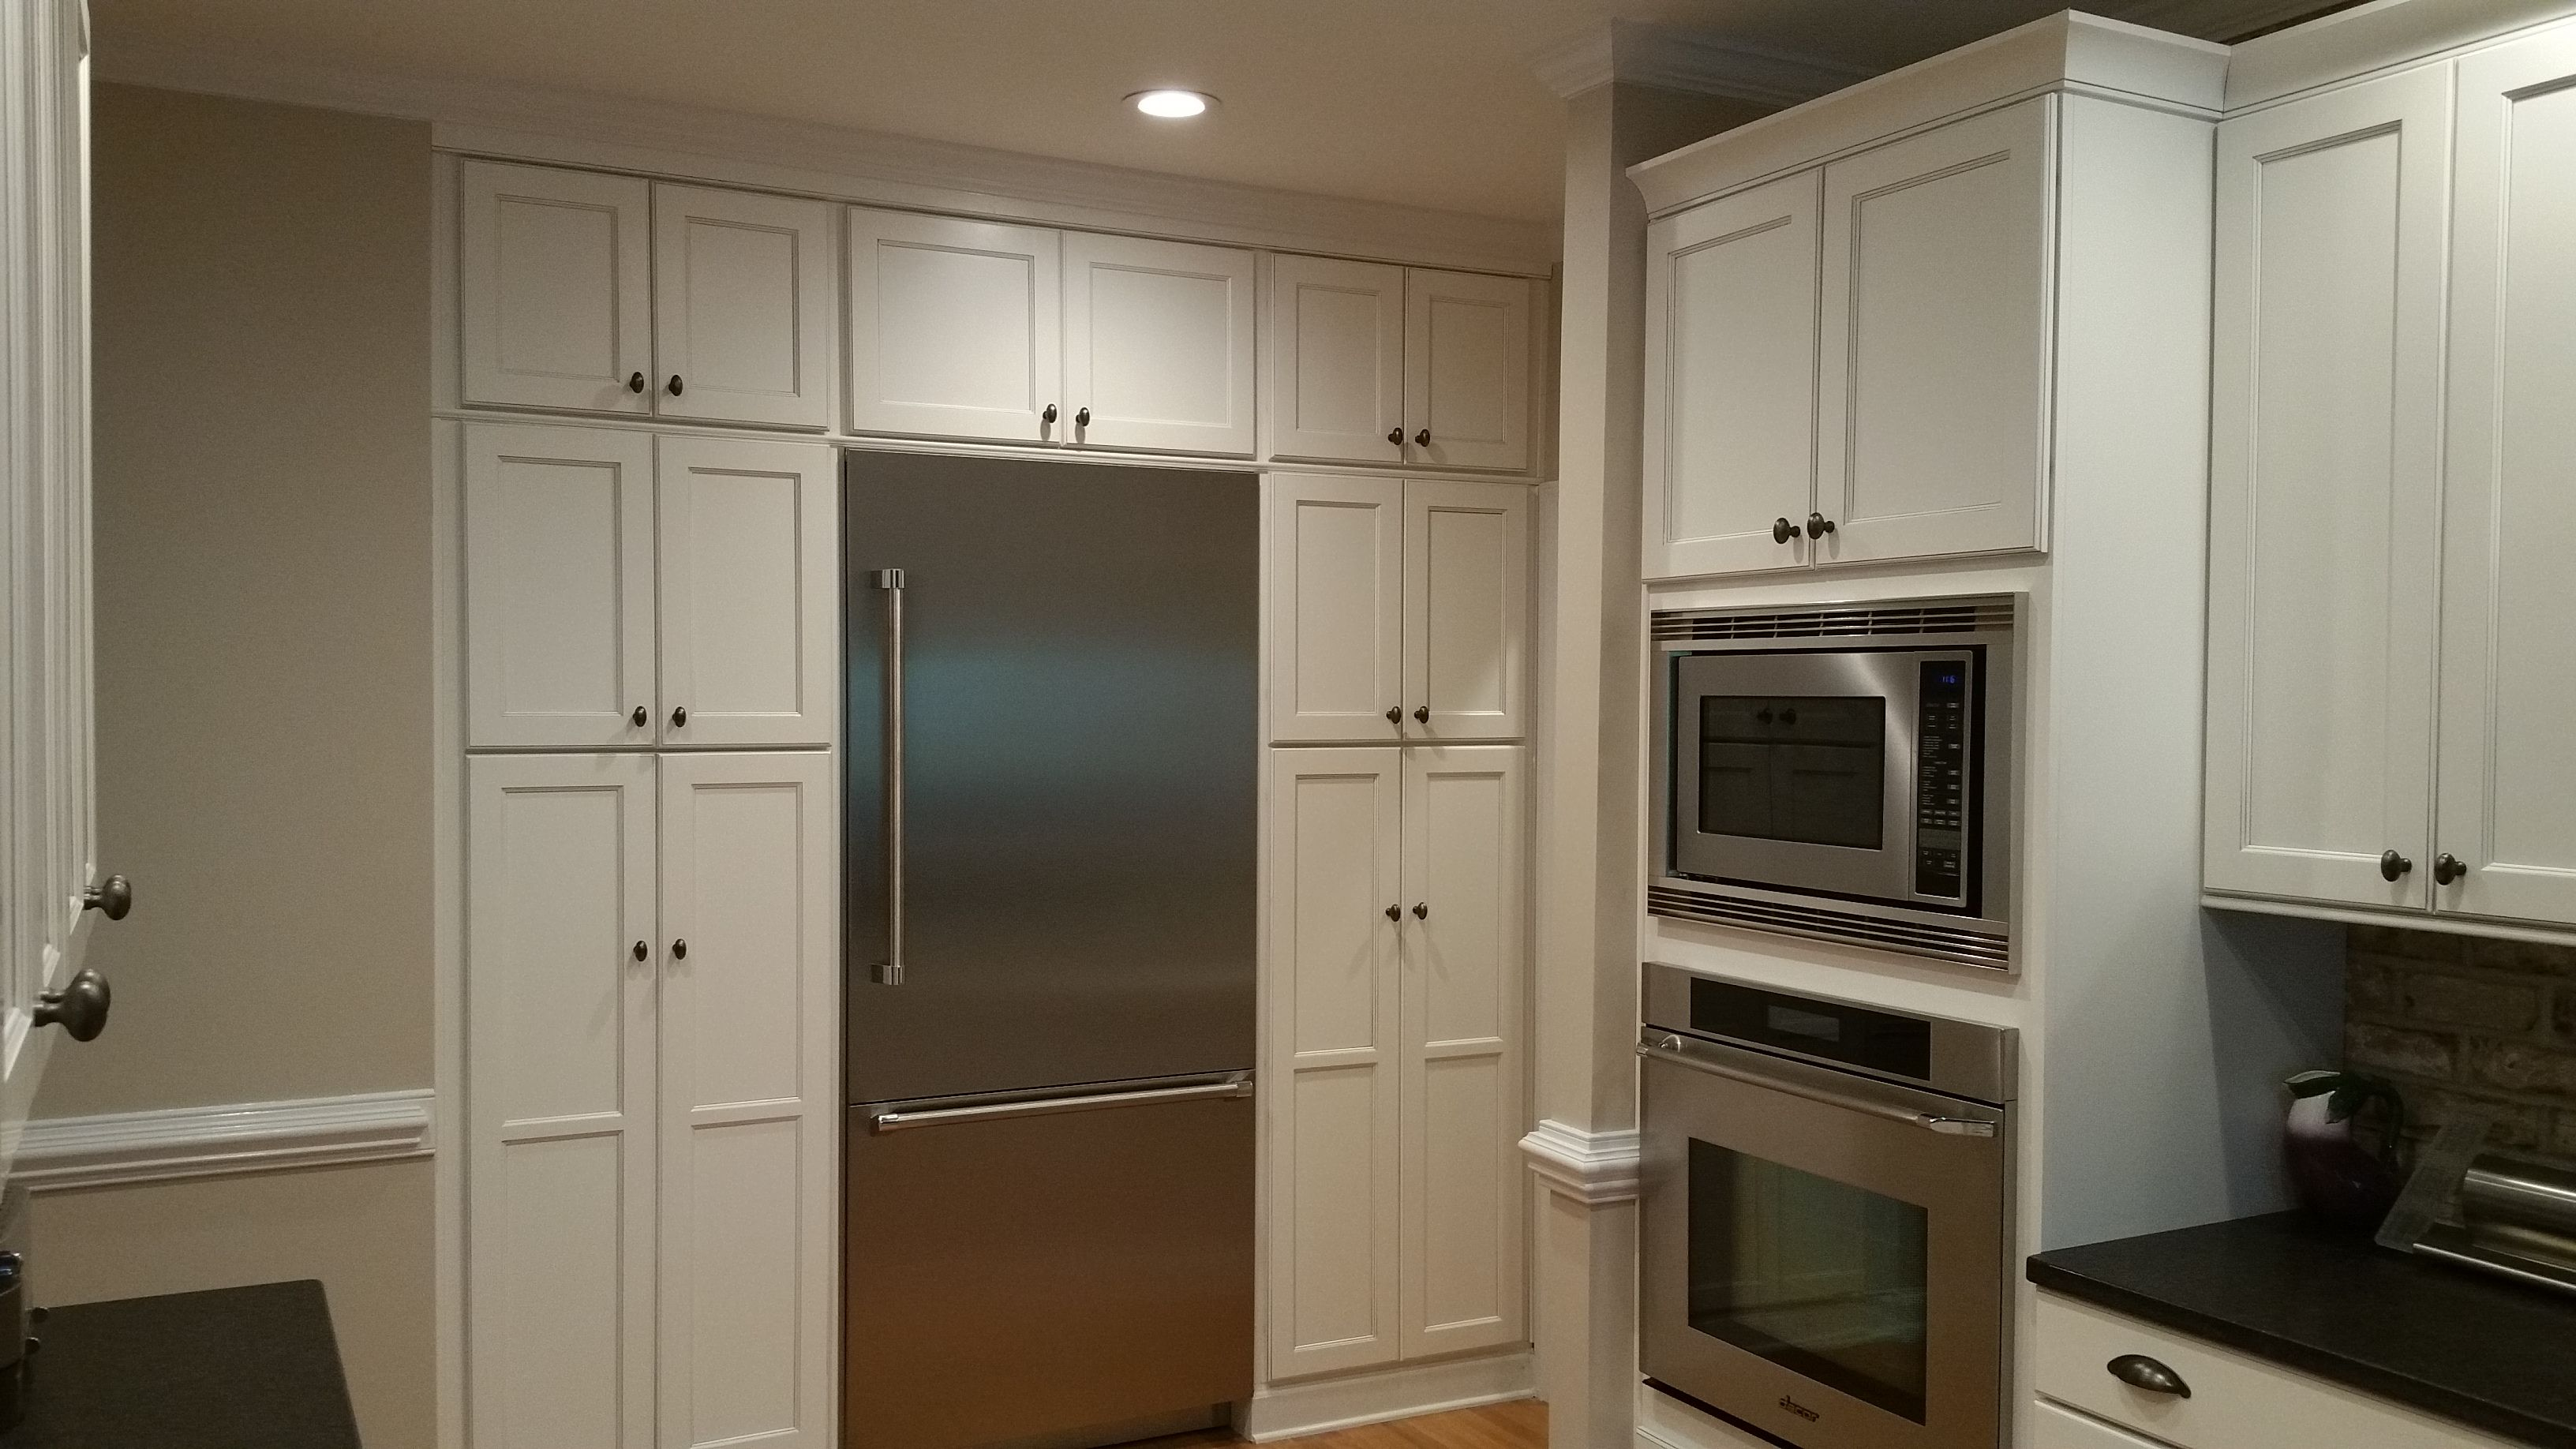 Built In Refrigerator With Custom Cabinets In Kitchen Tingen Remodeling Cary Nc Built In Refrigerator Custom Kitchen Remodel Brick Kitchen